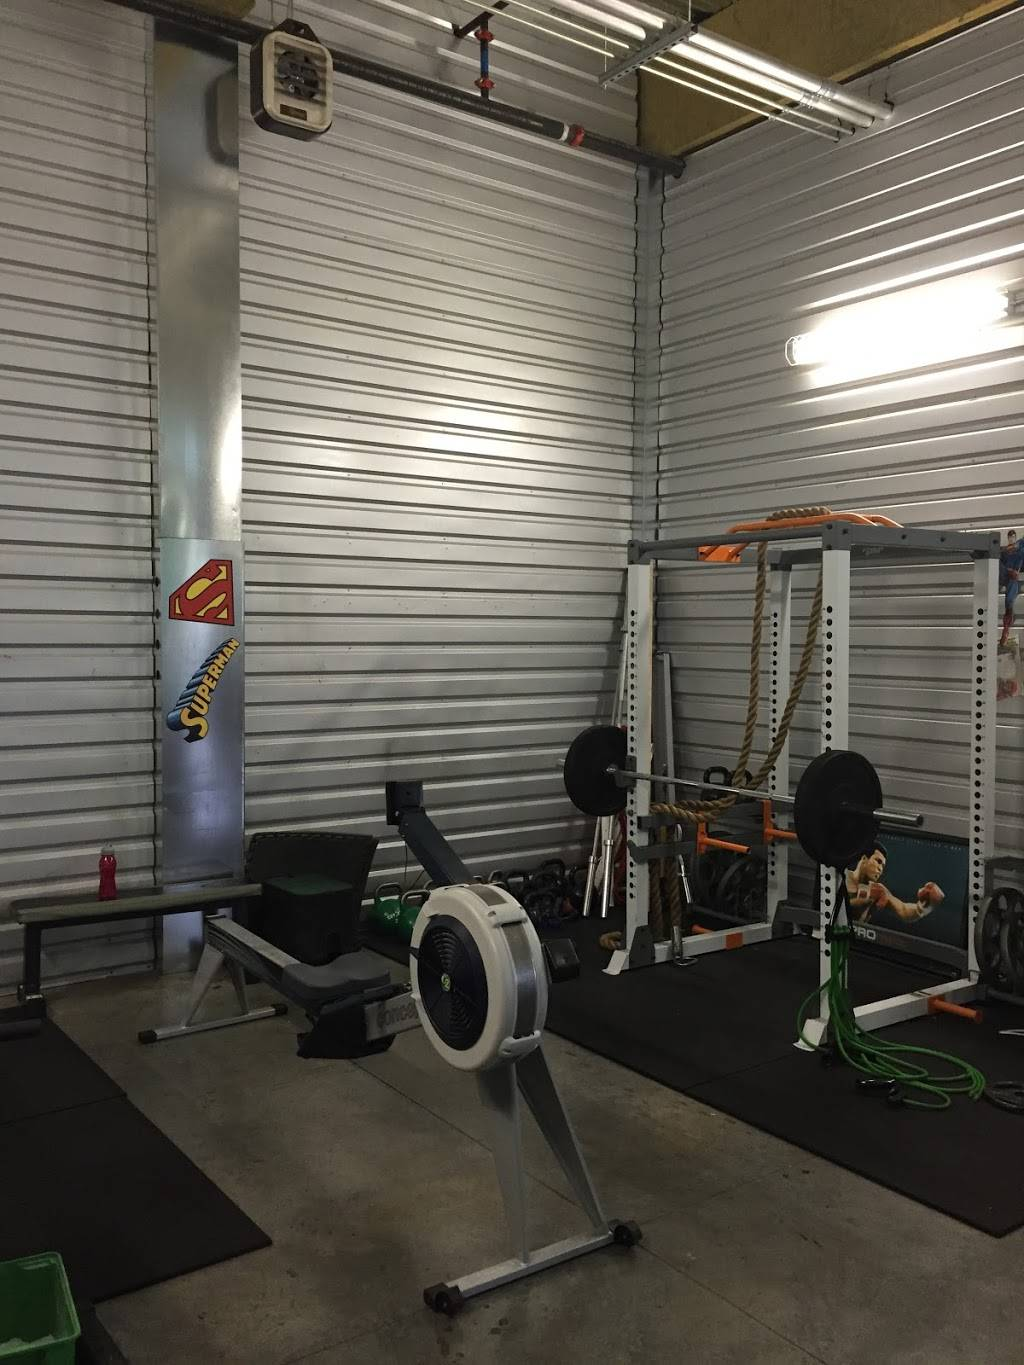 Sandbothe Strong - gym  | Photo 4 of 9 | Address: 1323 NW 16th Ave, Portland, OR 97209, USA | Phone: (503) 550-7952